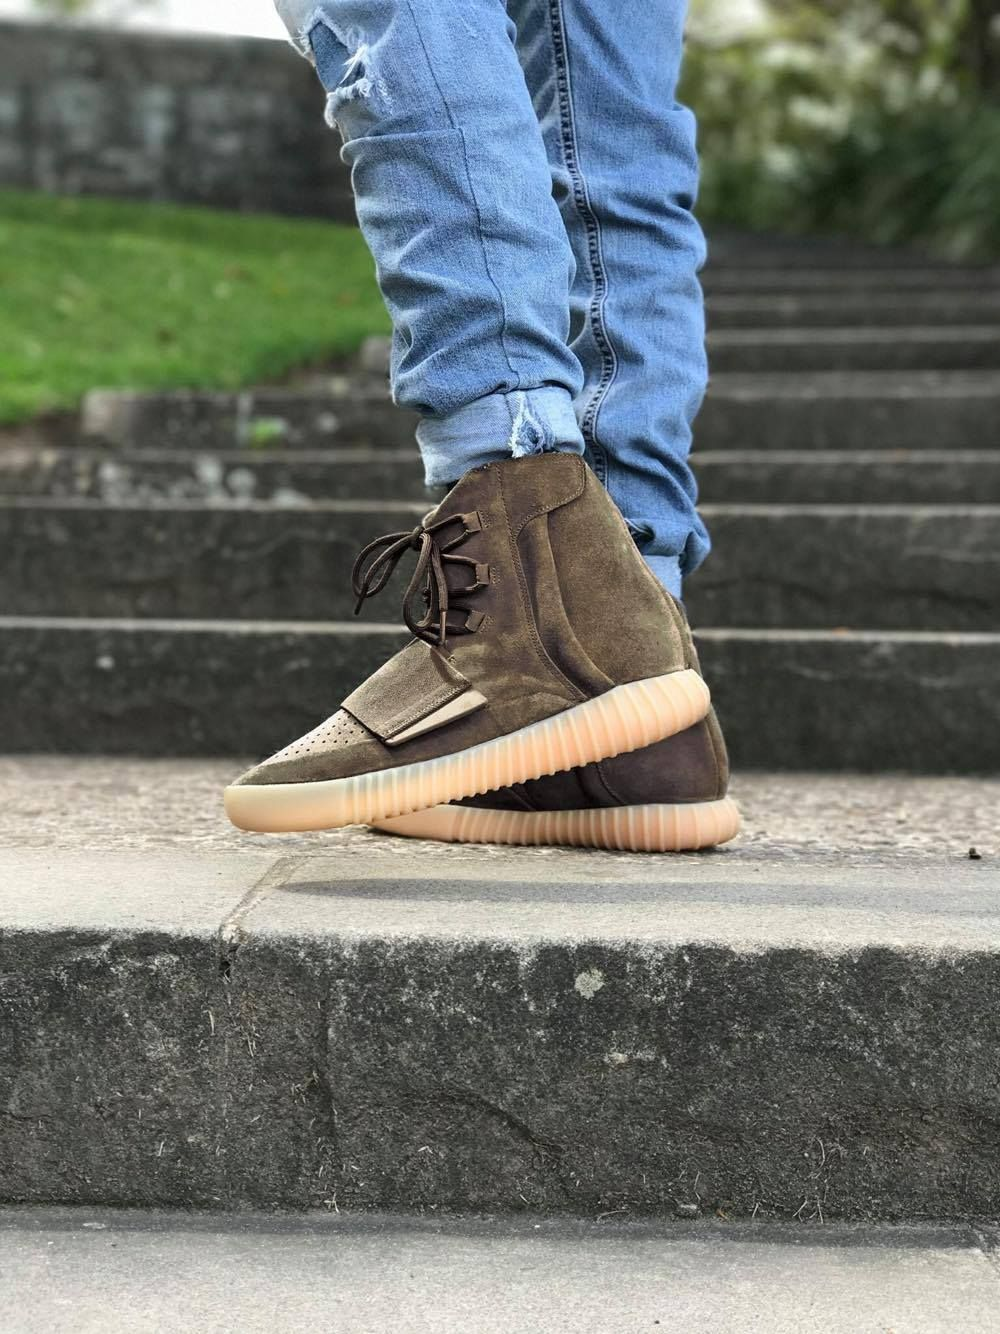 fee4a83a2 Watch out for all the fake Adidas Yeezy 750 Boost s